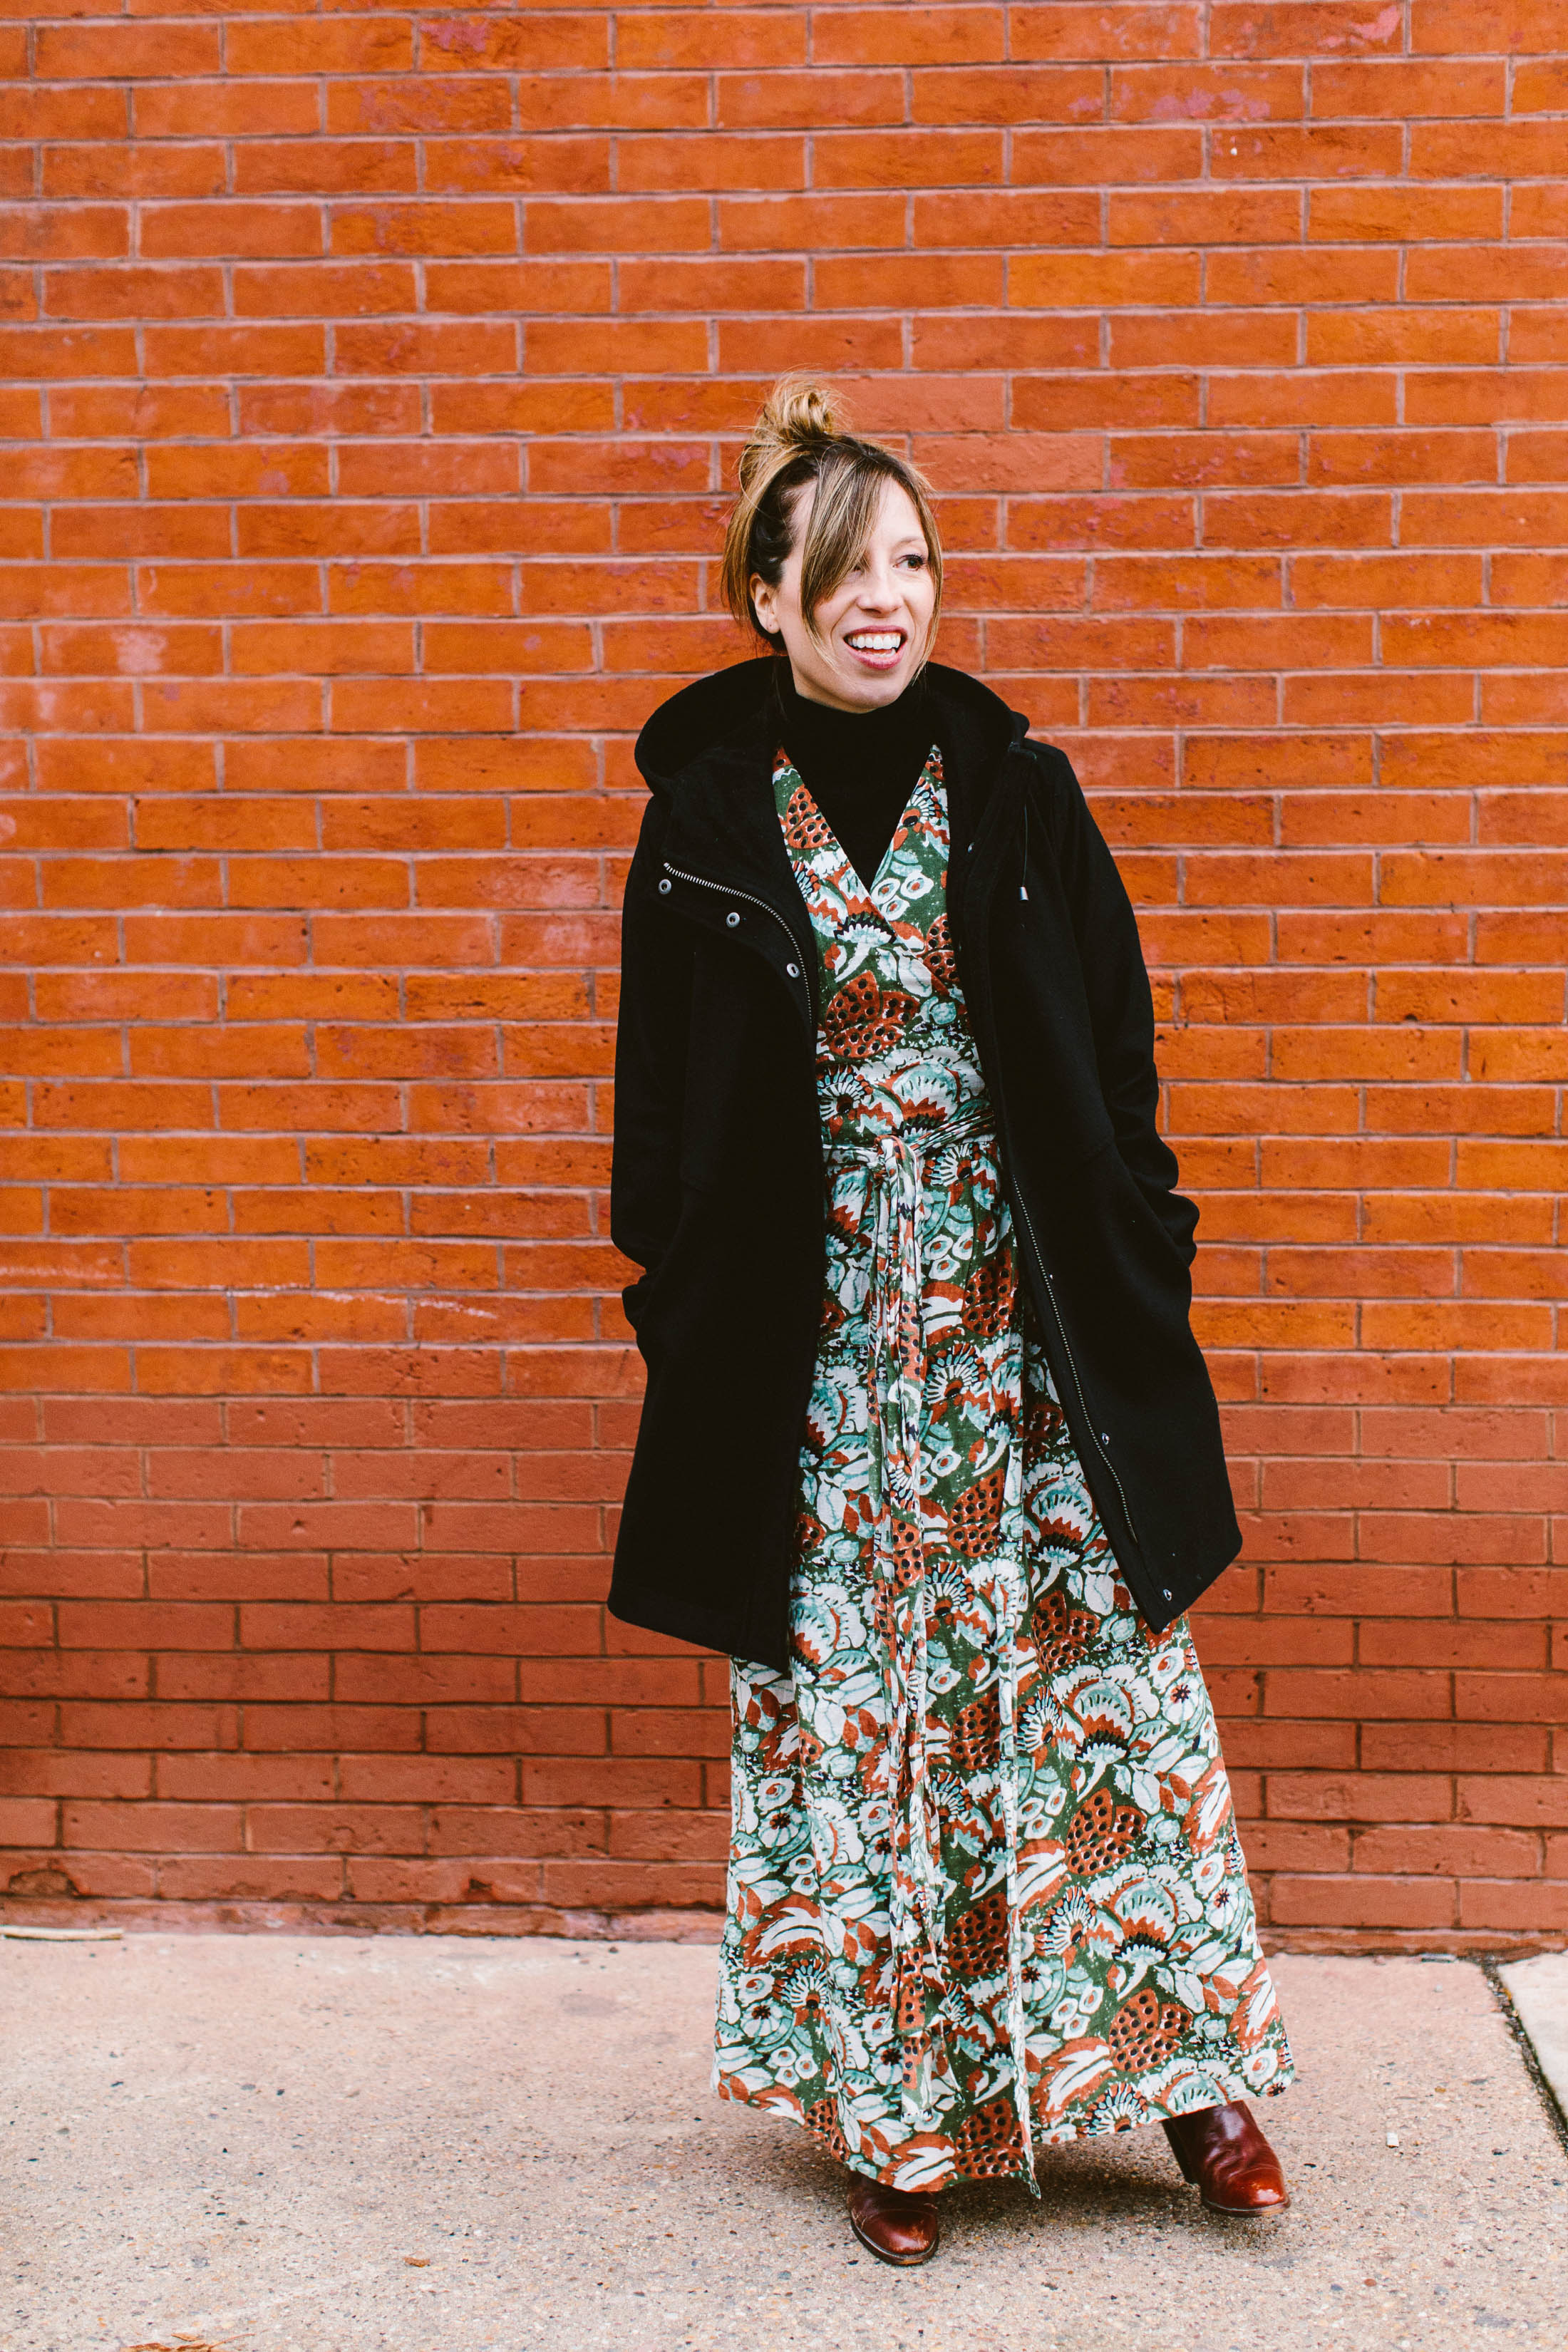 Totally stumped on which coat to wear with a maxi dress? You're not alone. We've got 5 — yup, 5 — styles of jackets that work super-well with a maxi skirt.